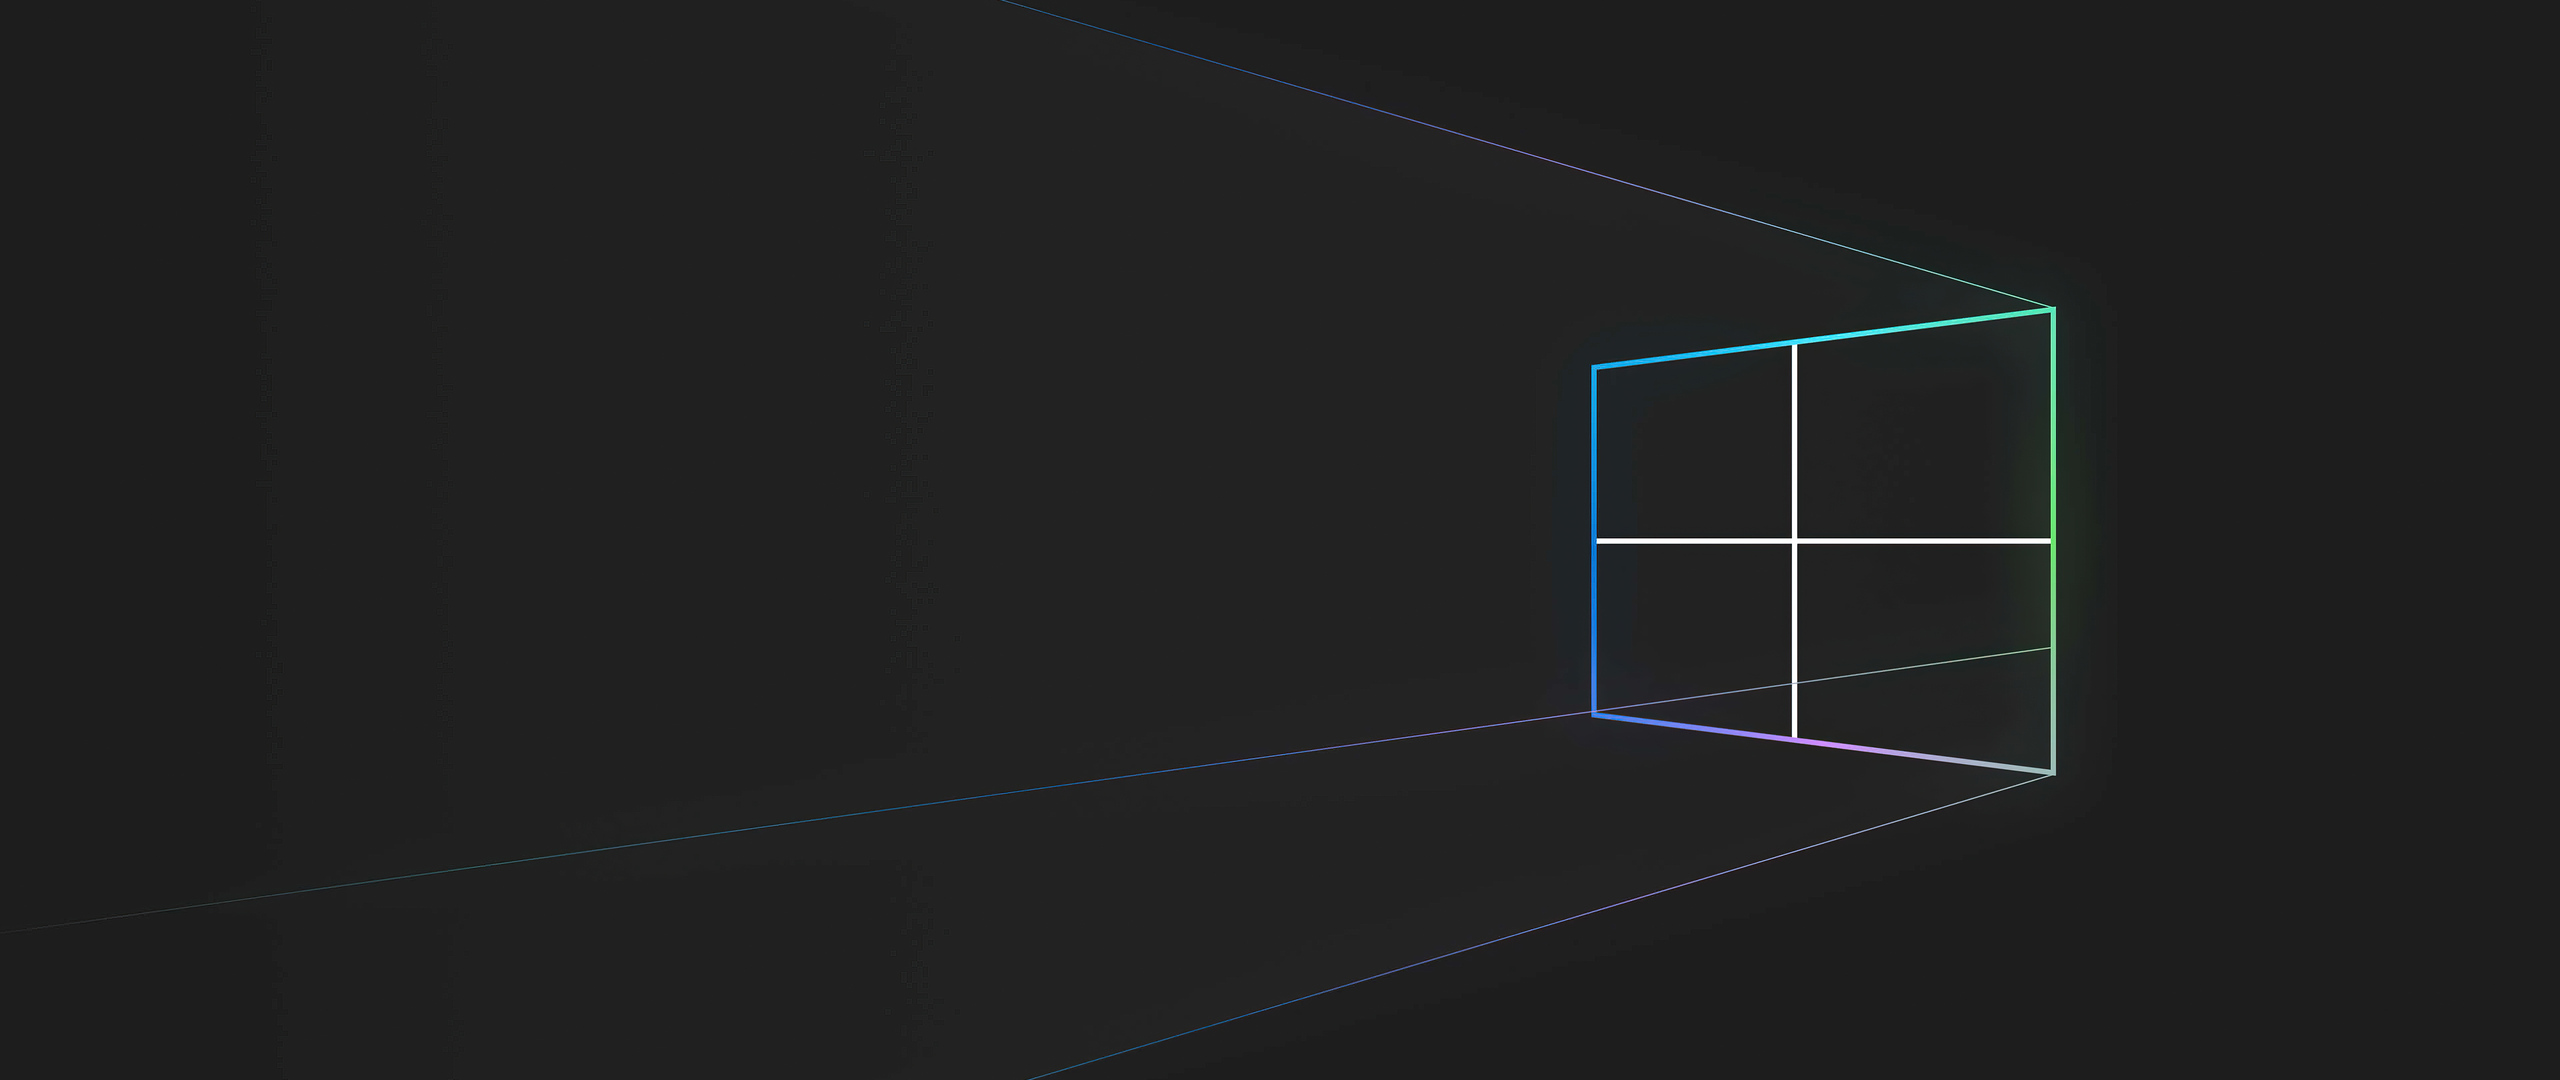 windows-10-minimal-simple-5k-28.jpg